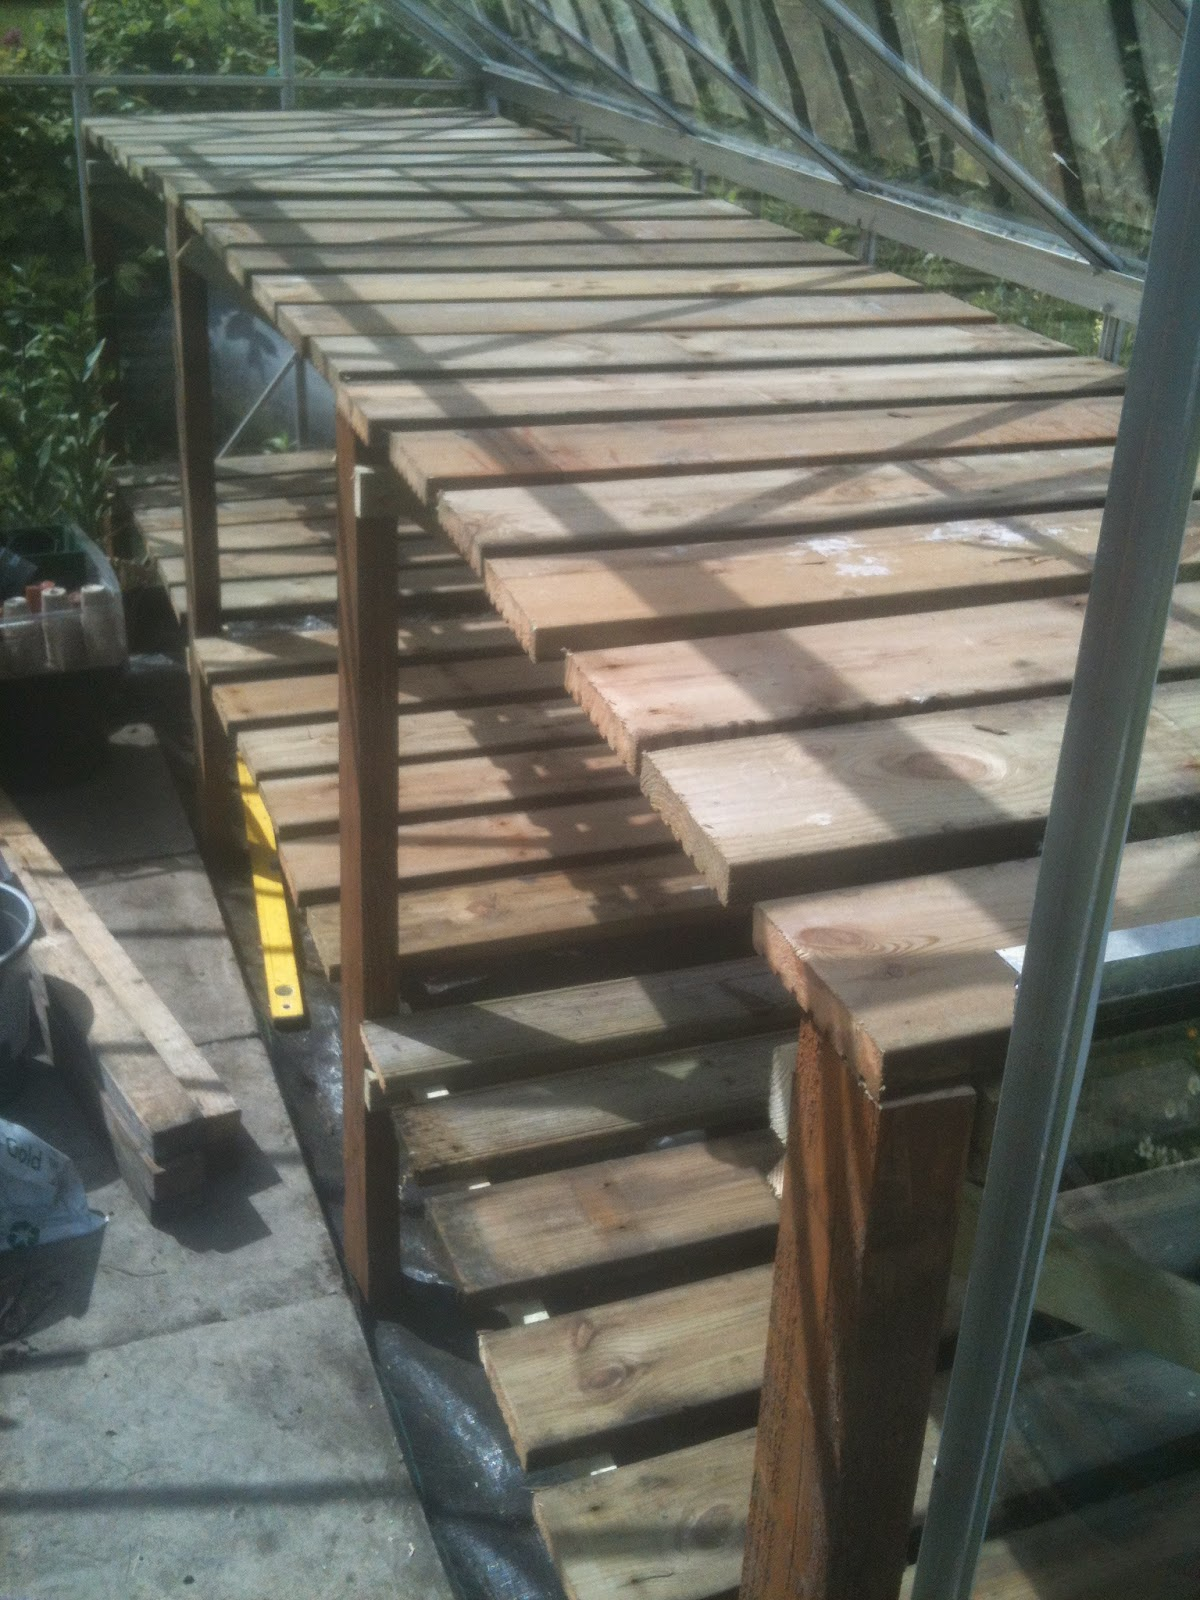 Building cheap staging from recycled wood.